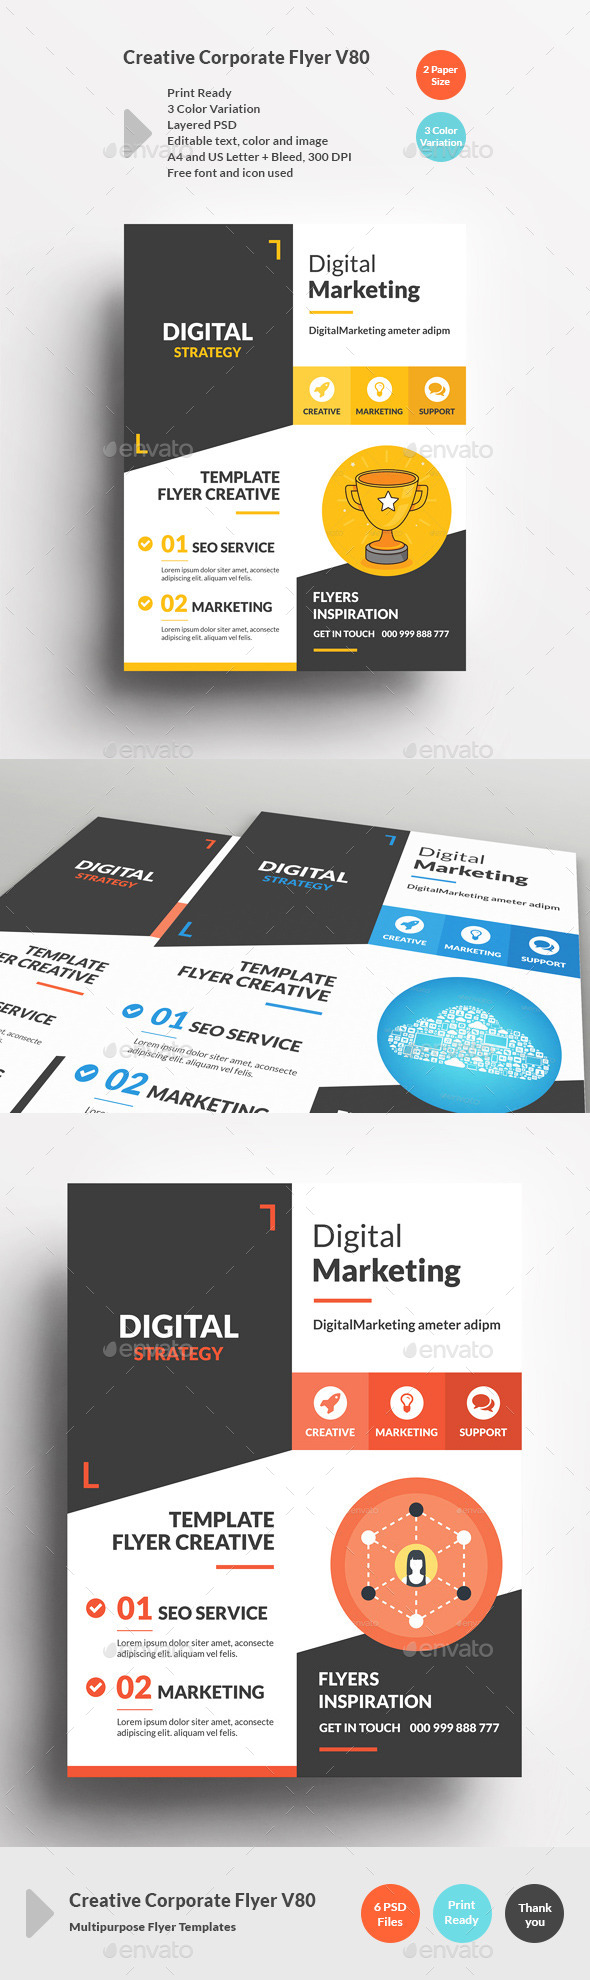 Creative Corporate Flyer V80 - Corporate Flyers